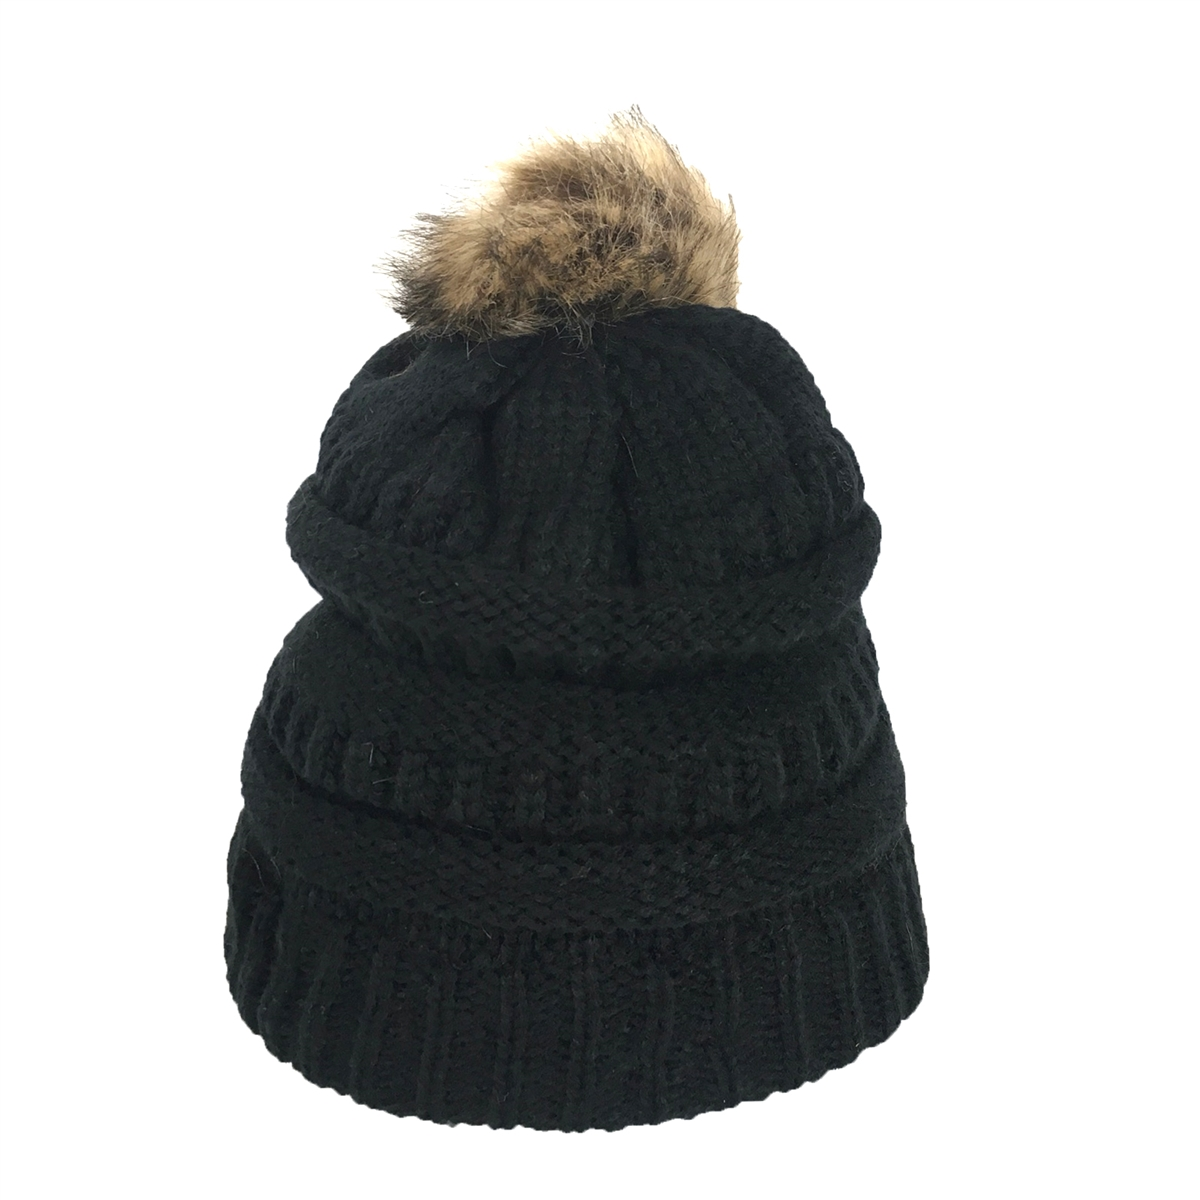 ee5a7d76b573a Fashion Culture Knit Pom Pom Fleece Lined Beanie Hat